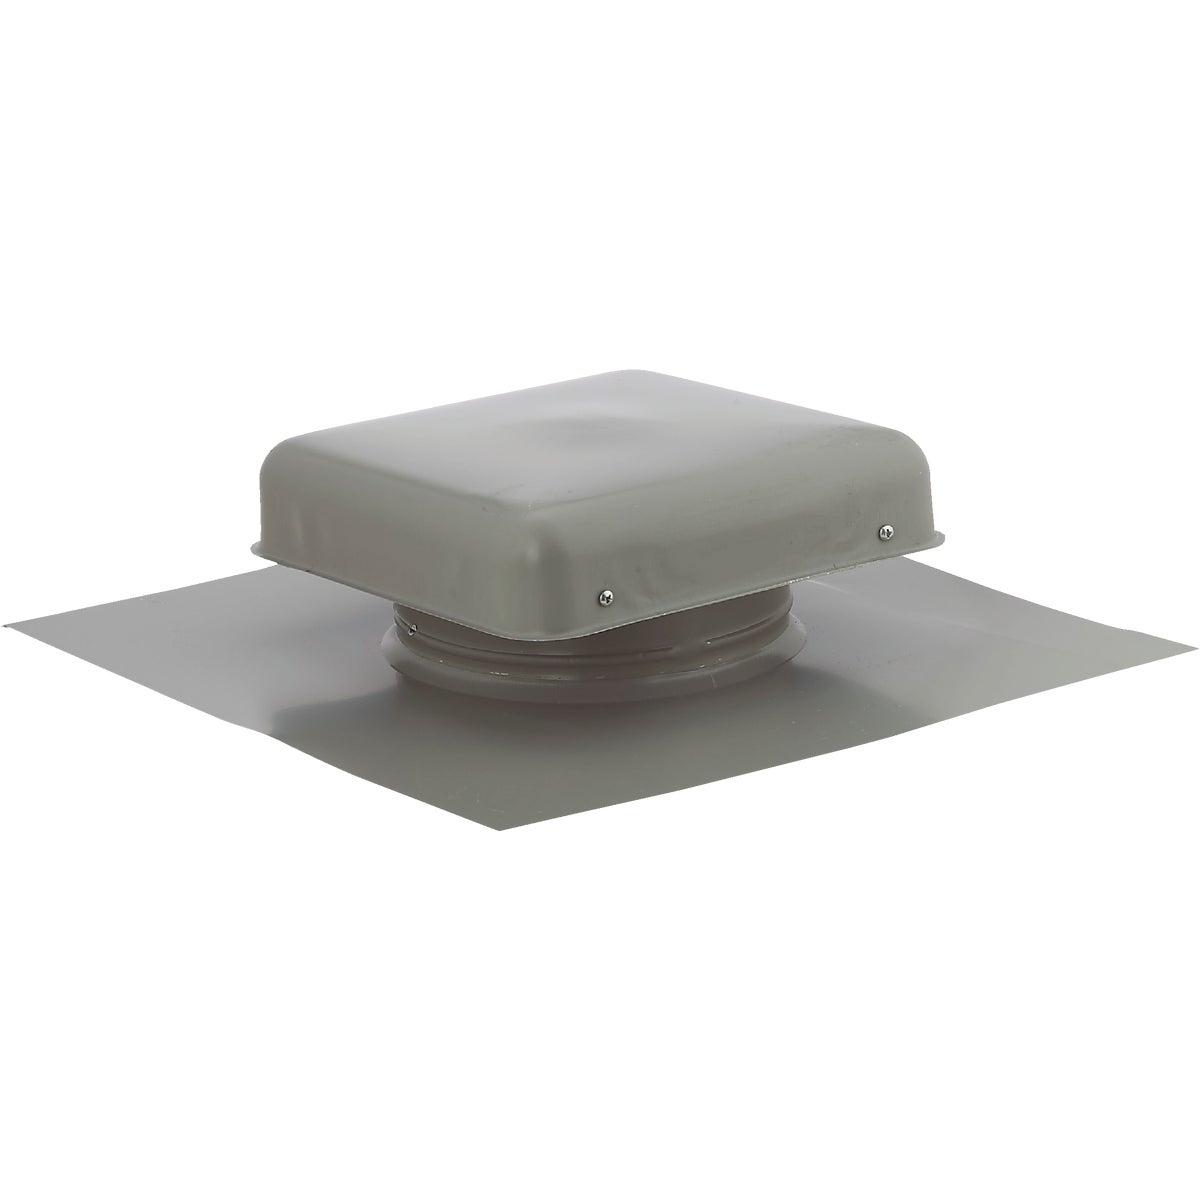 "38""GRY GALV SQ ROOF VENT - 557159 by Noll/norwesco Llc"